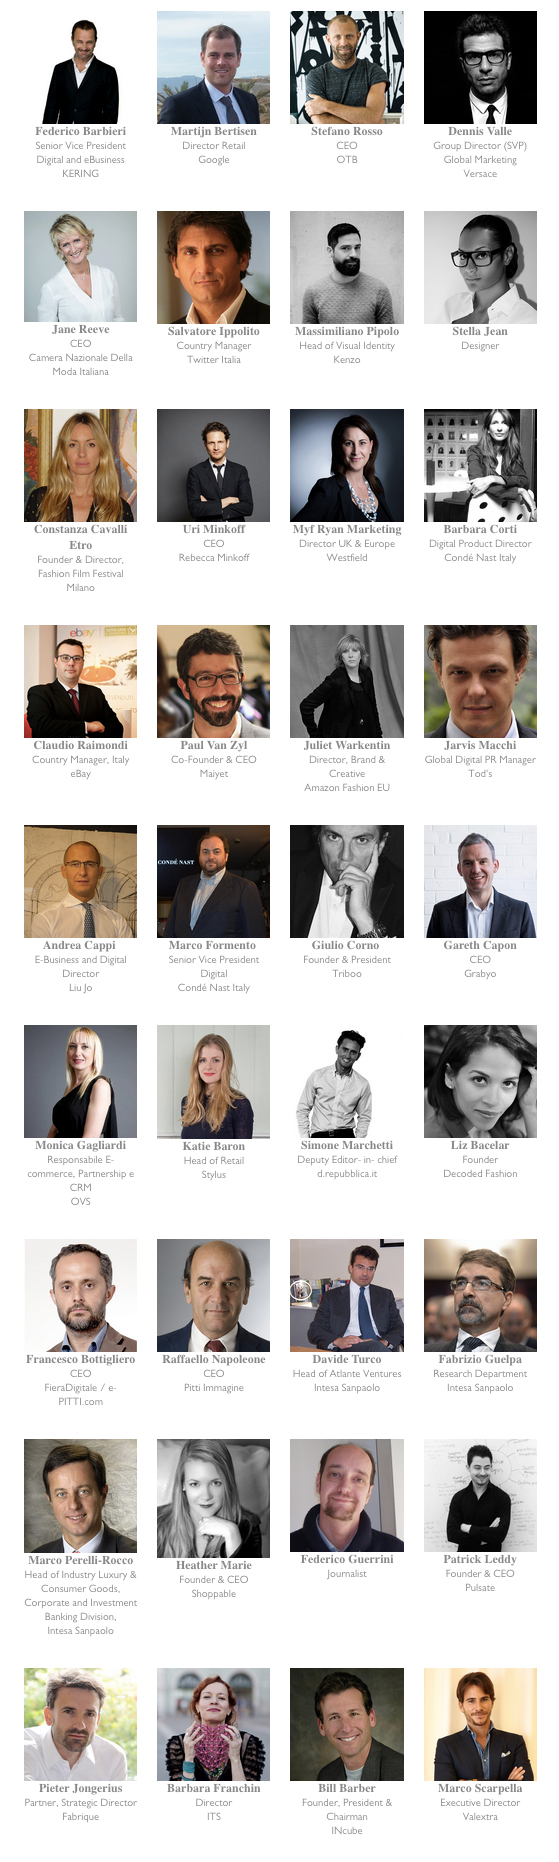 Decoded Fashion Milan 2014 Speakers